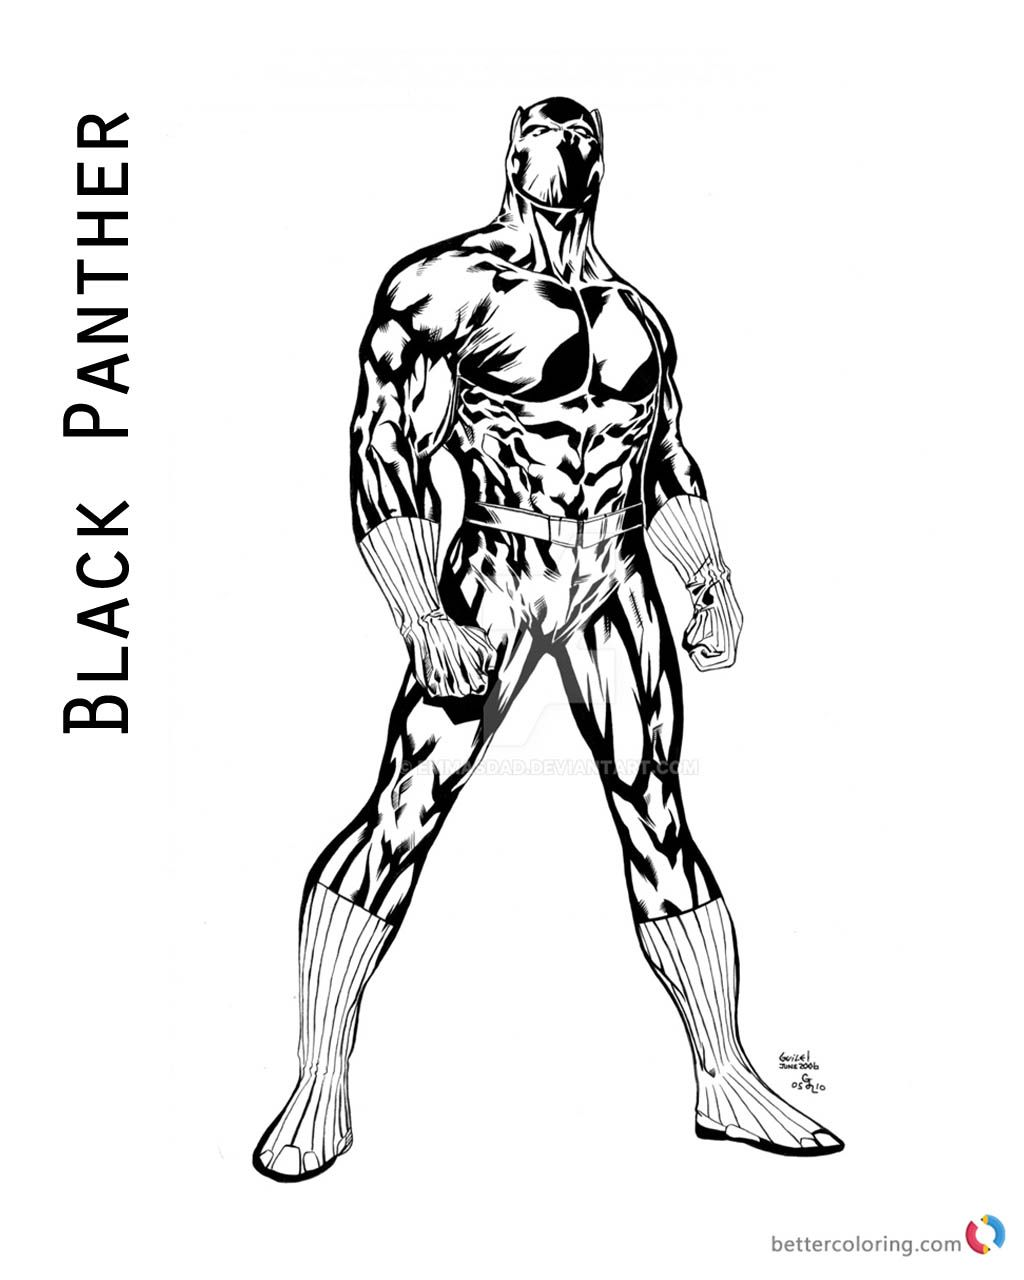 black panther marvel coloring pages Black Panther Coloring Pages Of Marvel Movie Free Printable | Best  black panther marvel coloring pages